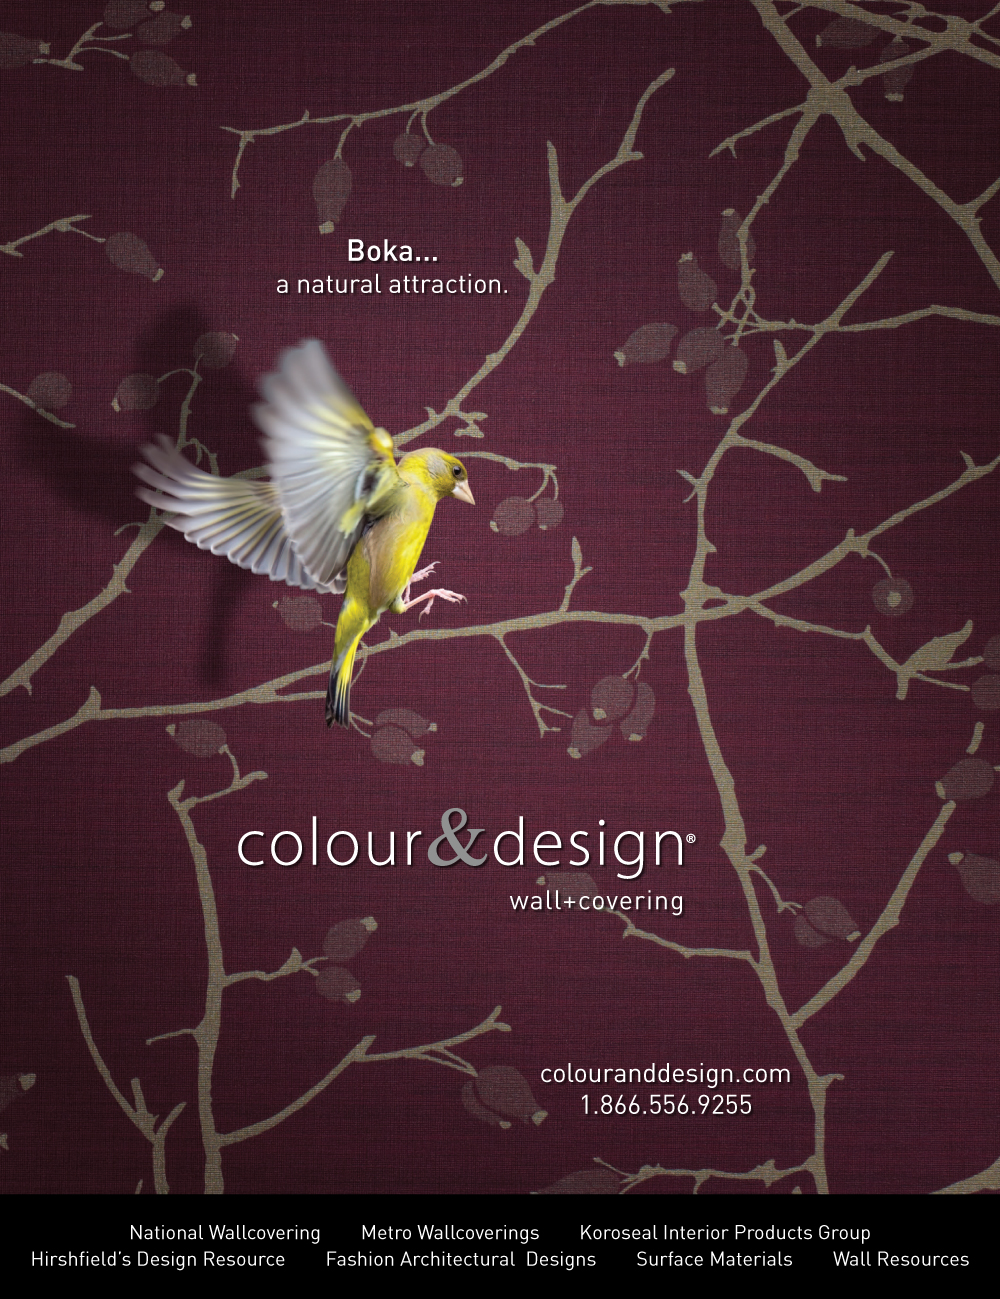 colour and design boka boysenberry purple commercial wallcovering with bird